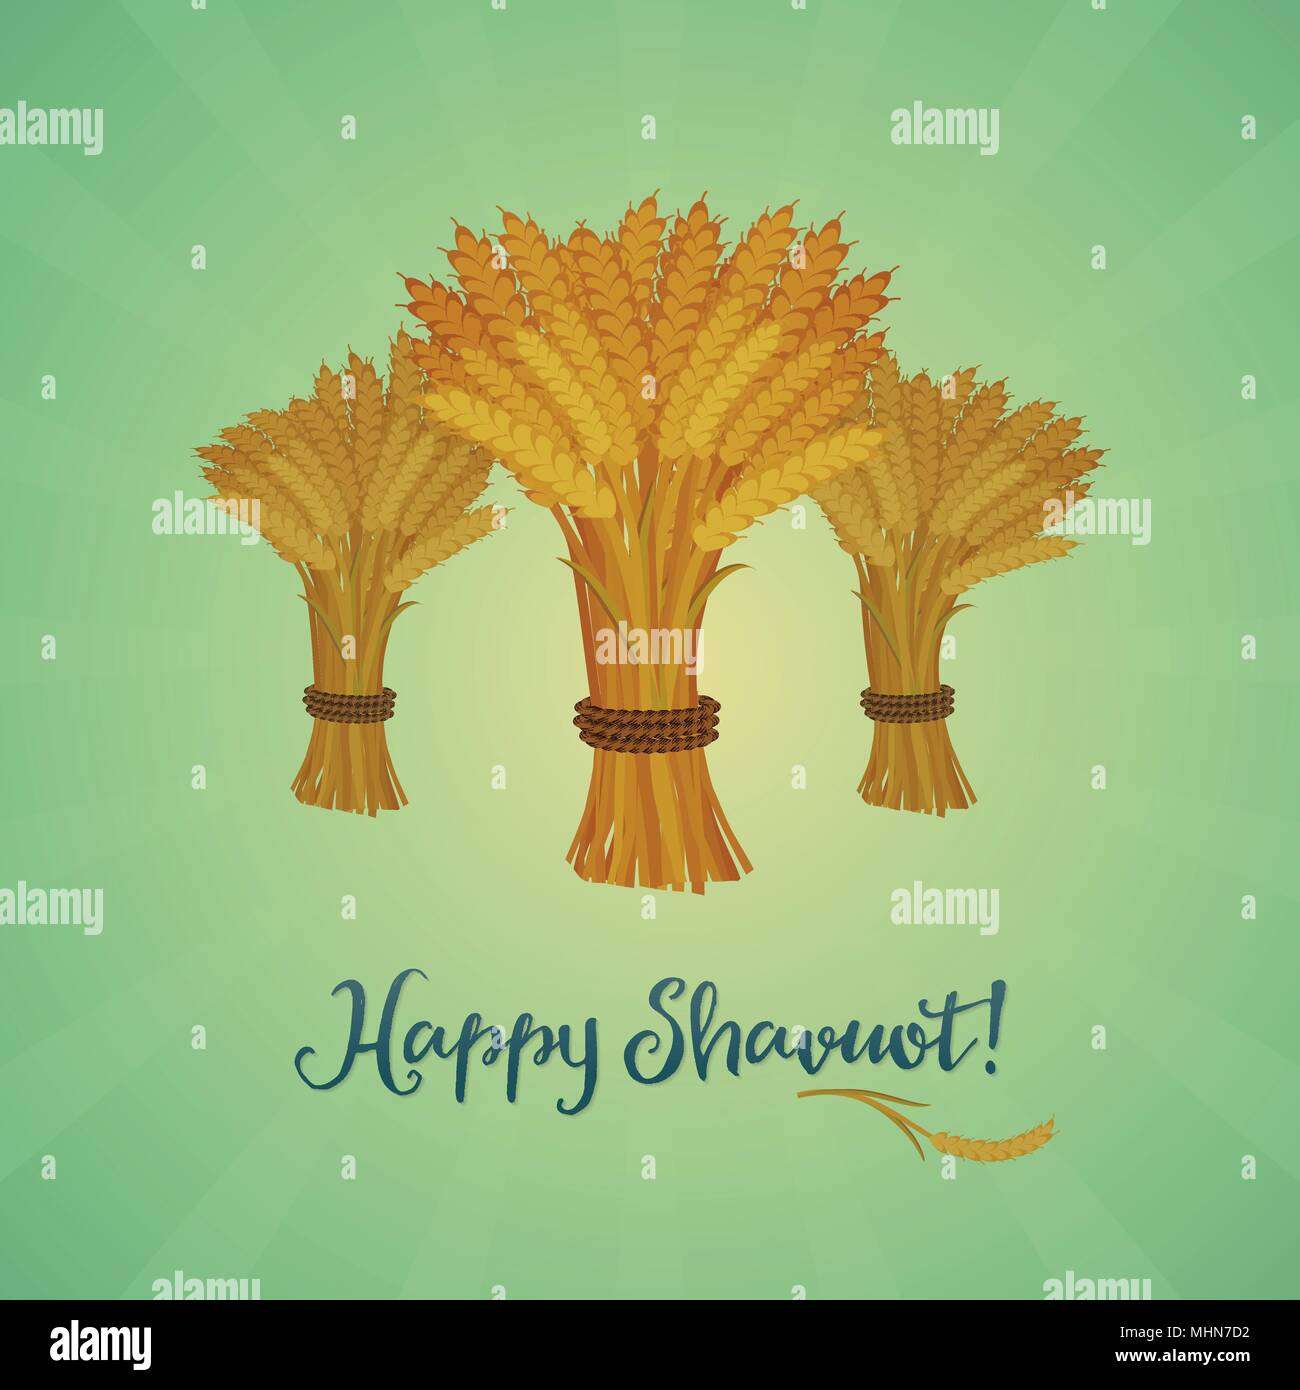 Jewish Holiday Greeting Card Sheaves Of Wheat With Greeting